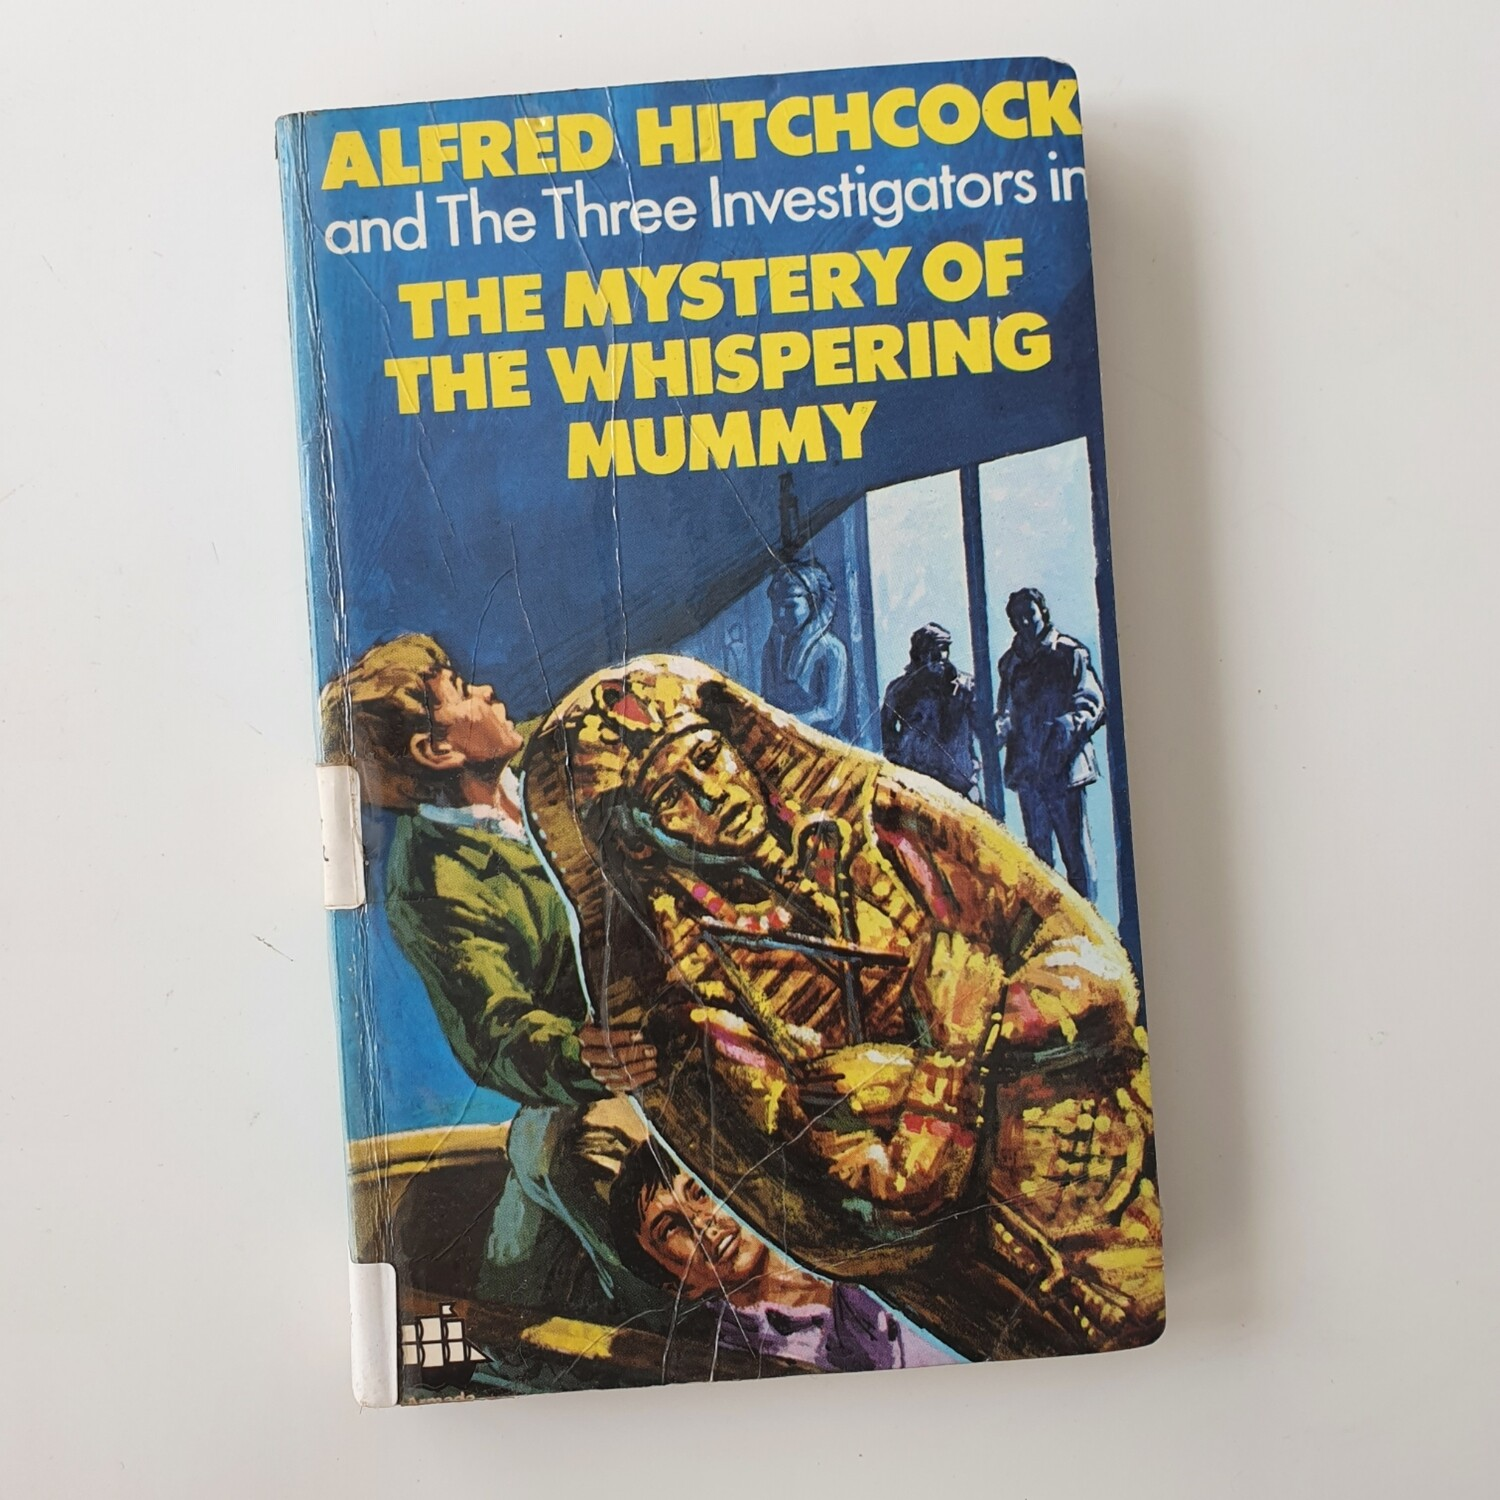 Alfred Hitchcock The Whispering Mummy Notebook - made from a paperback book